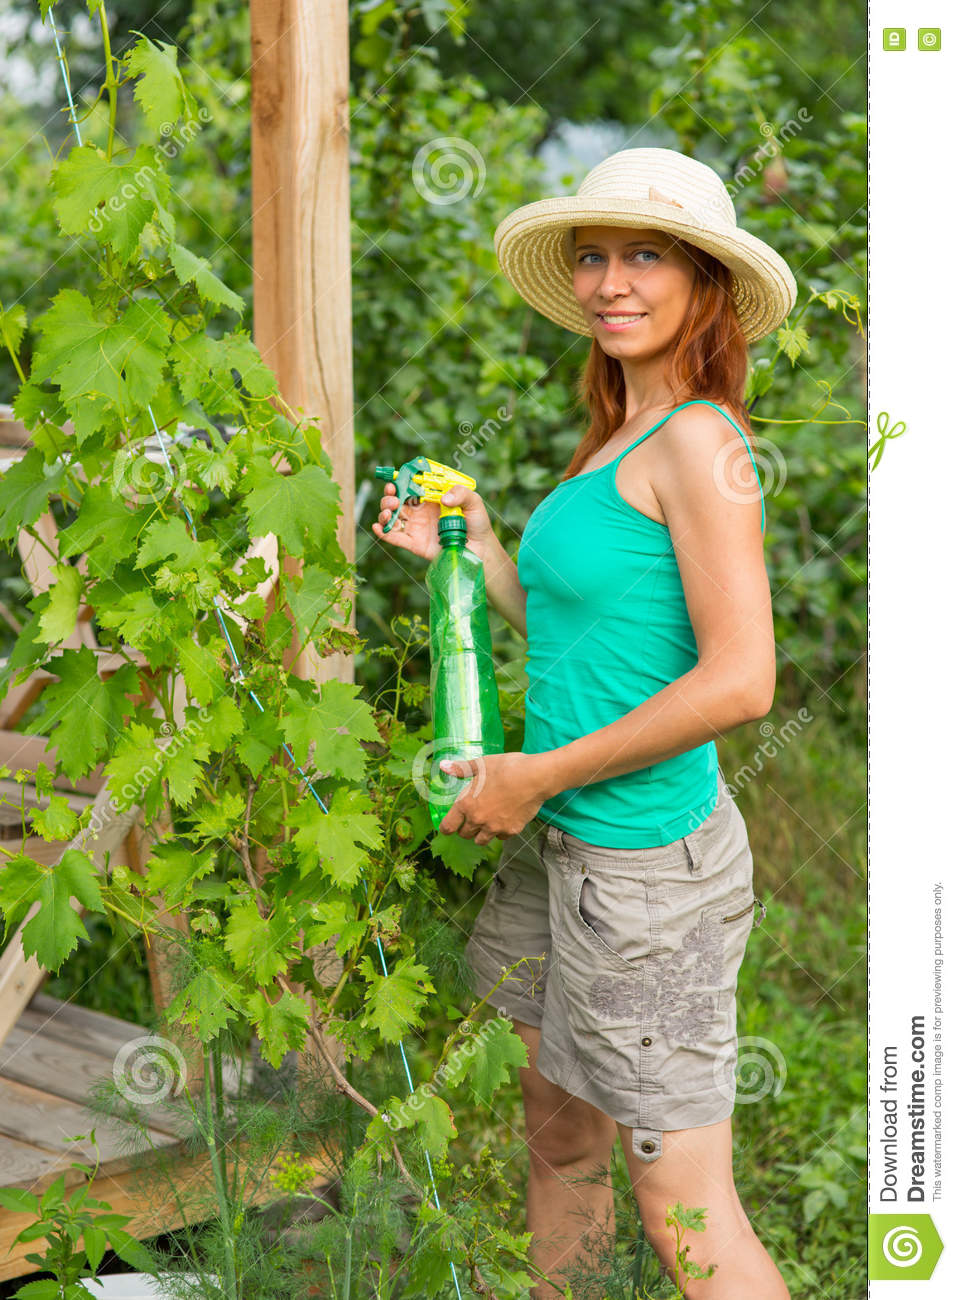 Woman squirting grapes solution